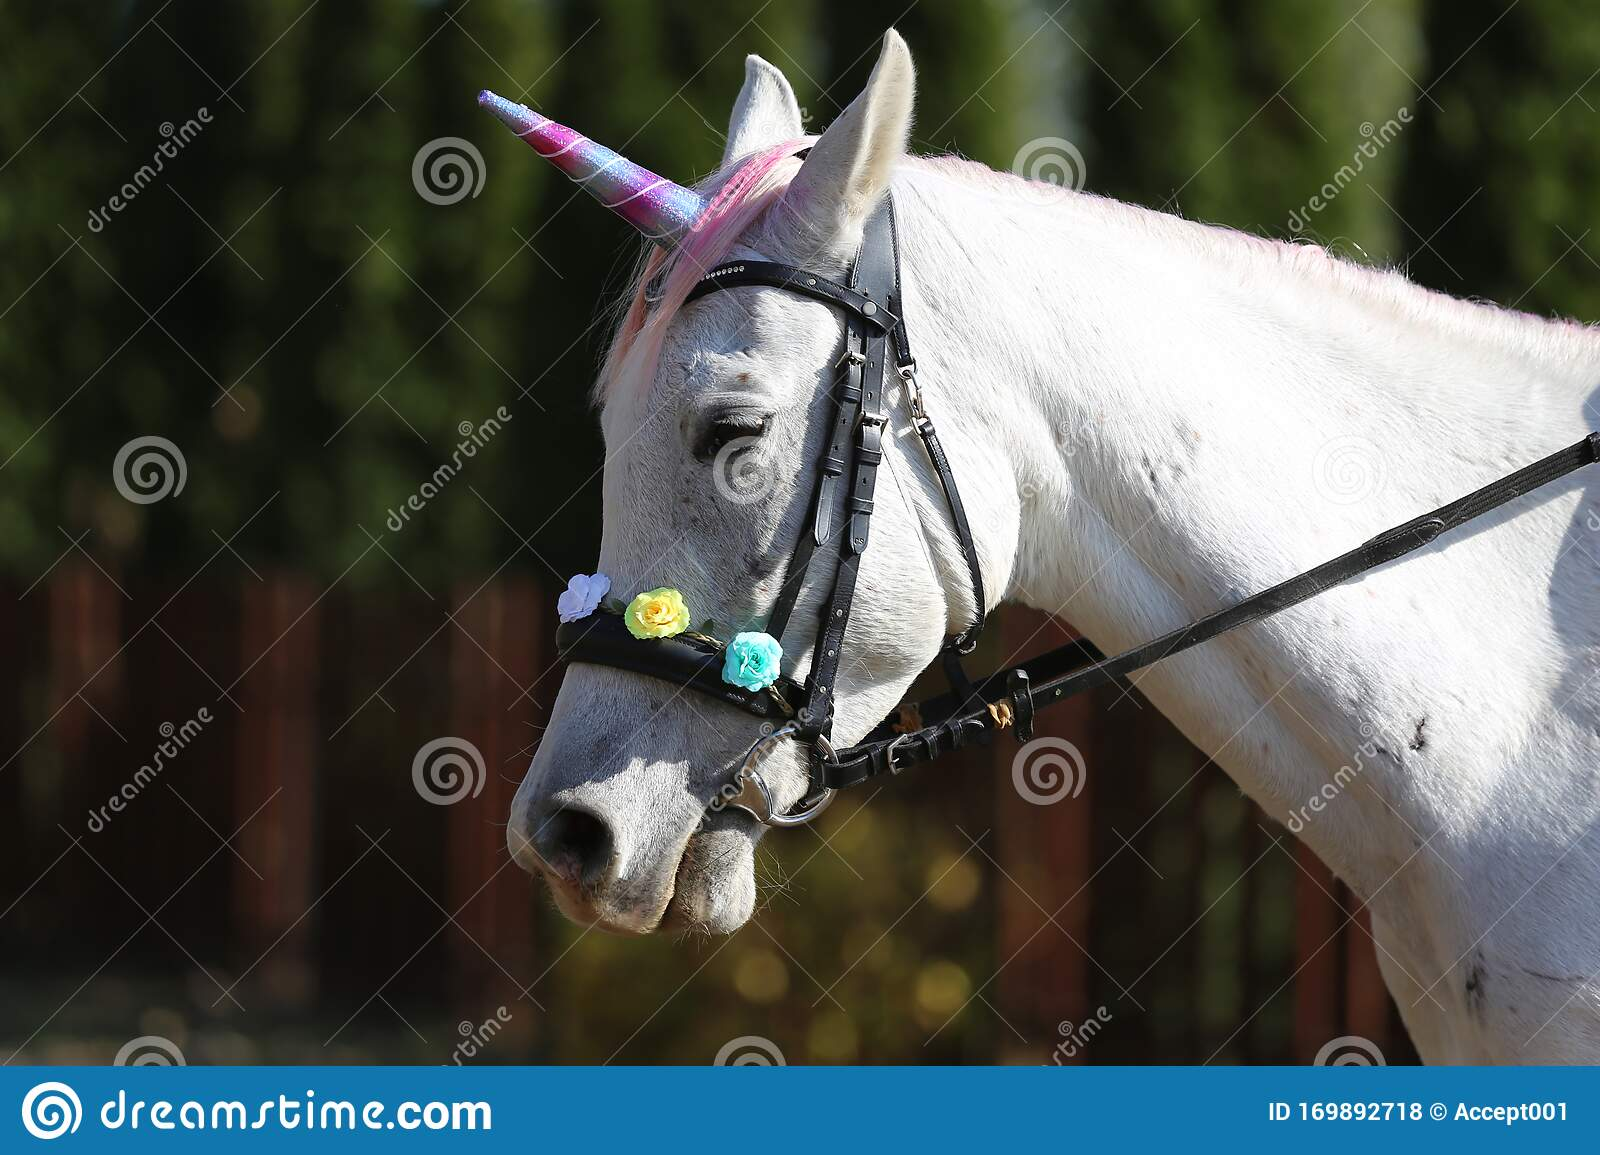 Beautiful Magical Unicorn Horse Realistic Photography Stock Photo Image Of Bright Beauty 169892718